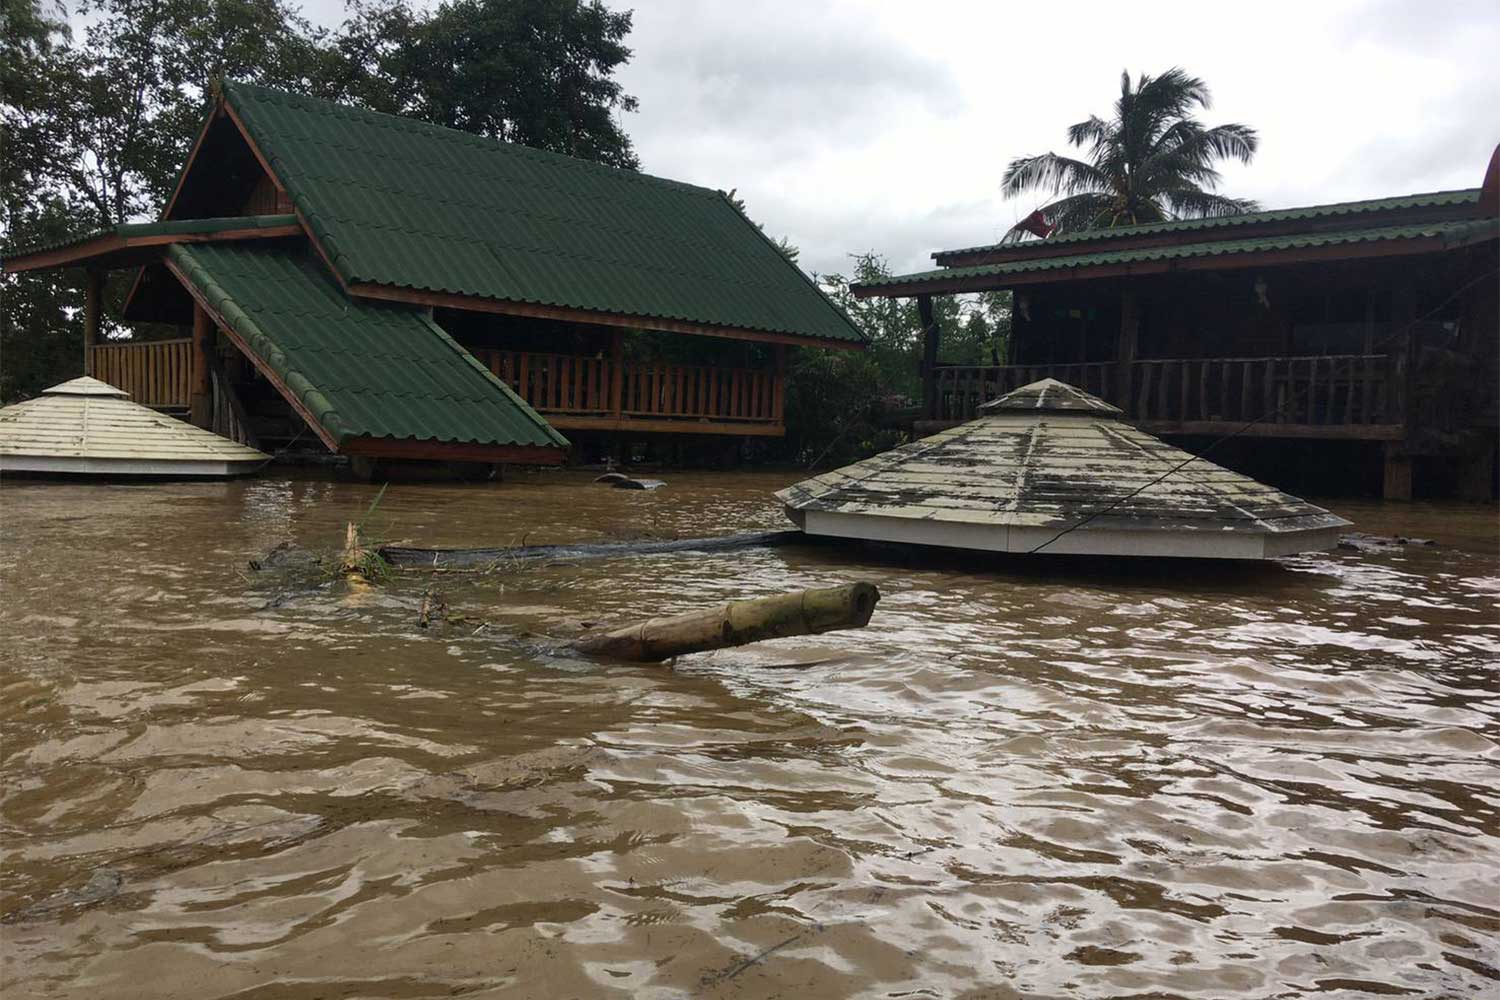 Houses downstream from the Lam Phra Phloeng Dam in Pak Thong Chai district of Nakhon Ratchasima are under water after a dam discharge caused canals to burst their banks. (Photo: Prasit Tangprasert)